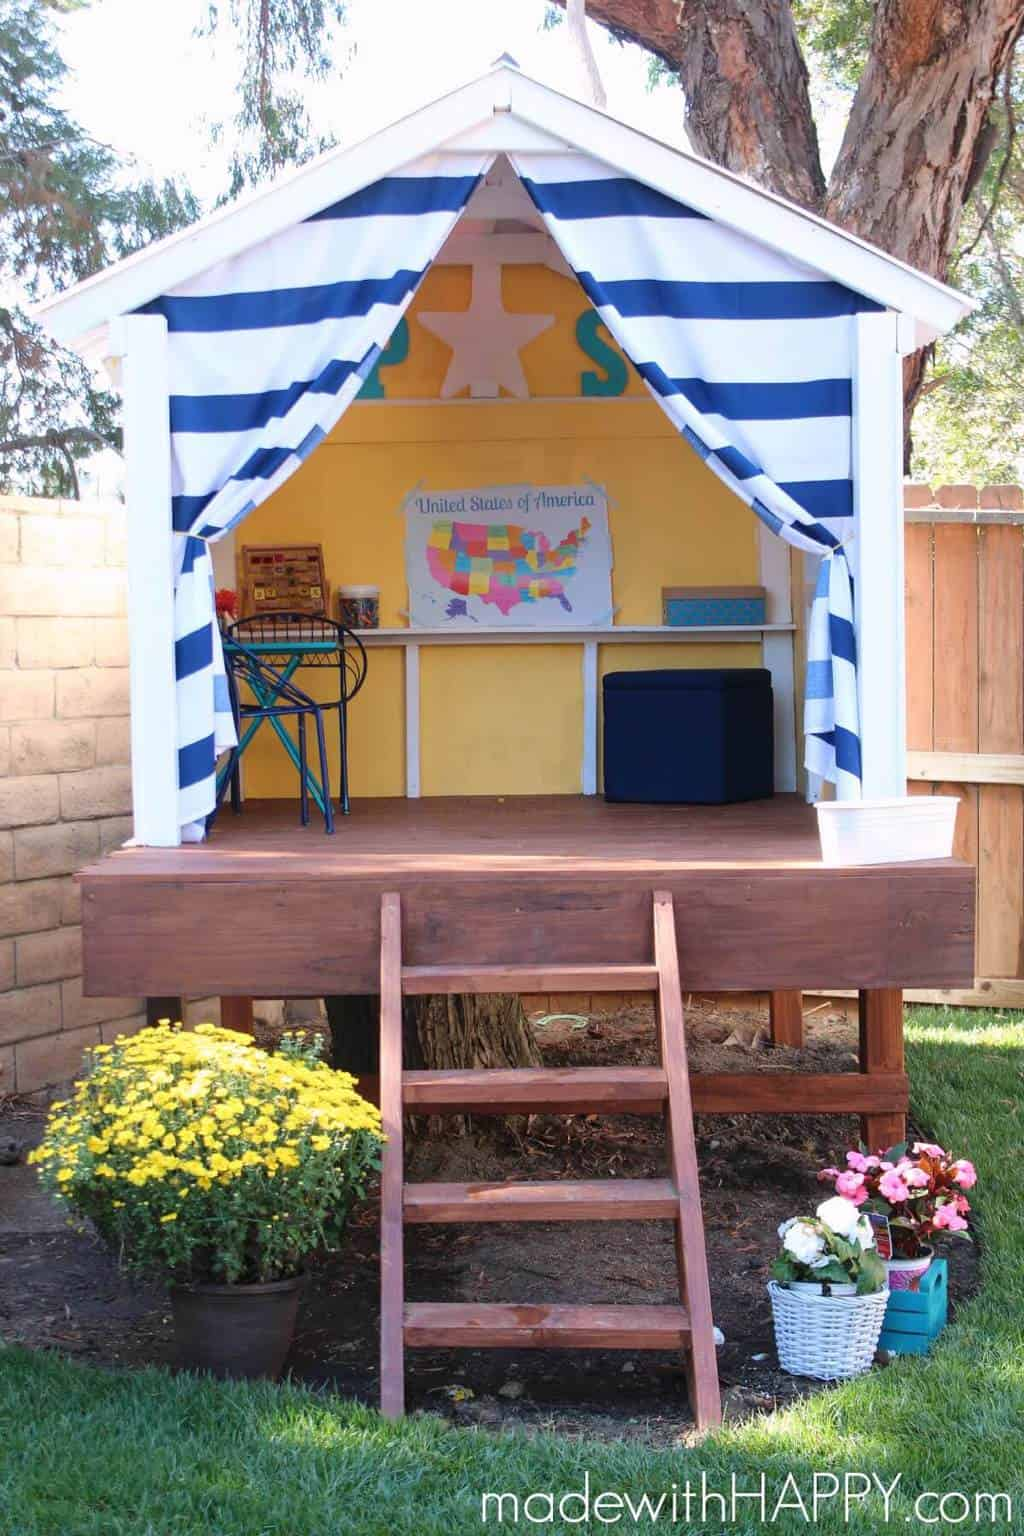 Happy Treehouse | Treehouse Ideas To Make Lasting Childhood Memories In